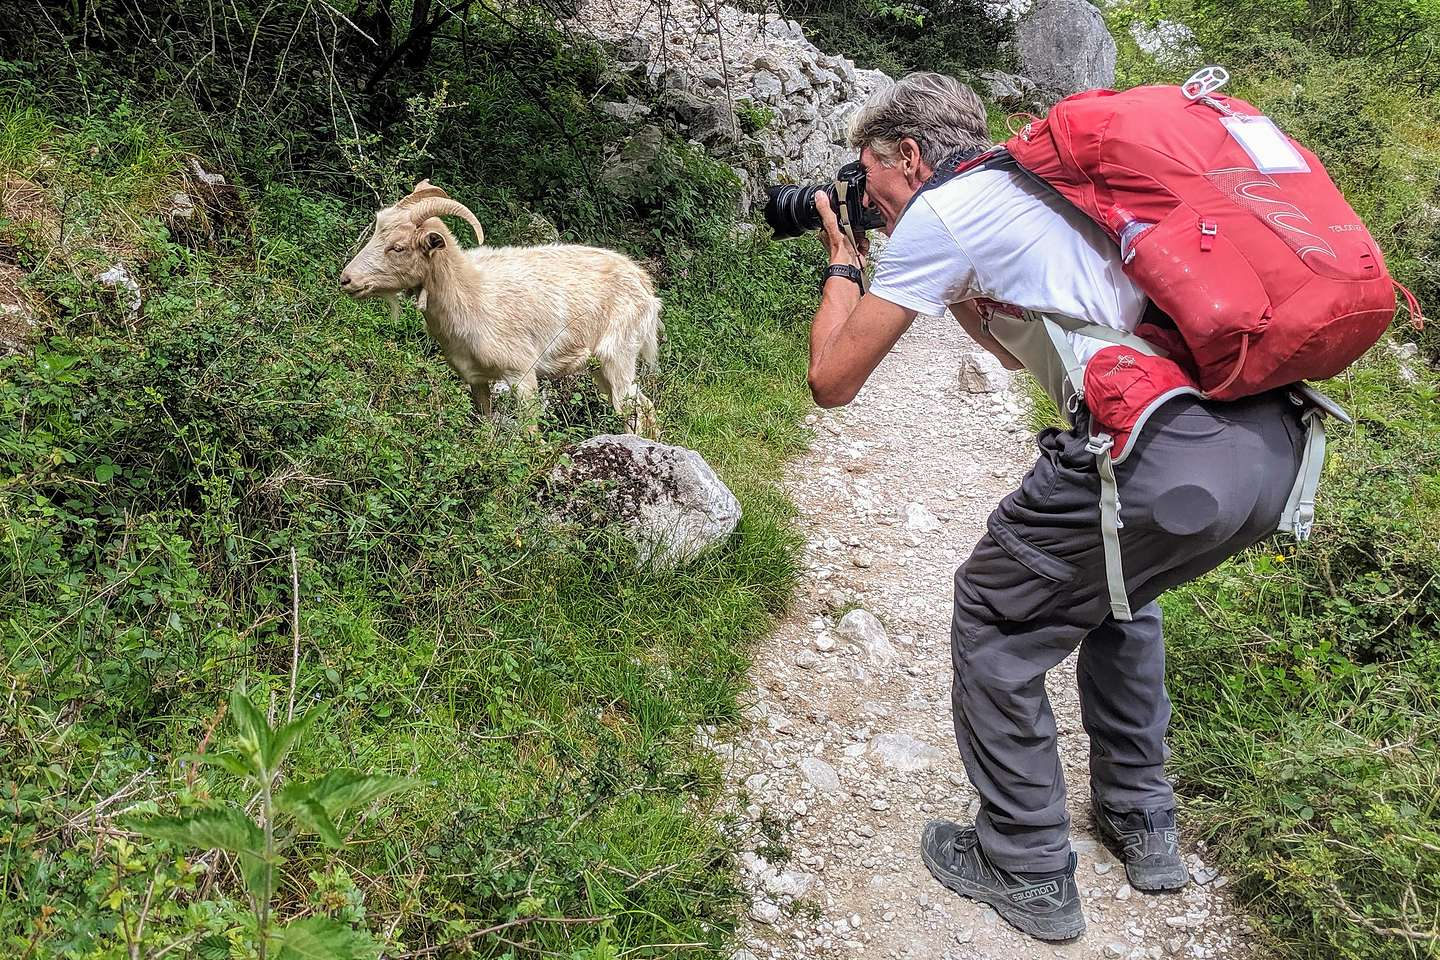 He took more pictures of that goat than me on this trip